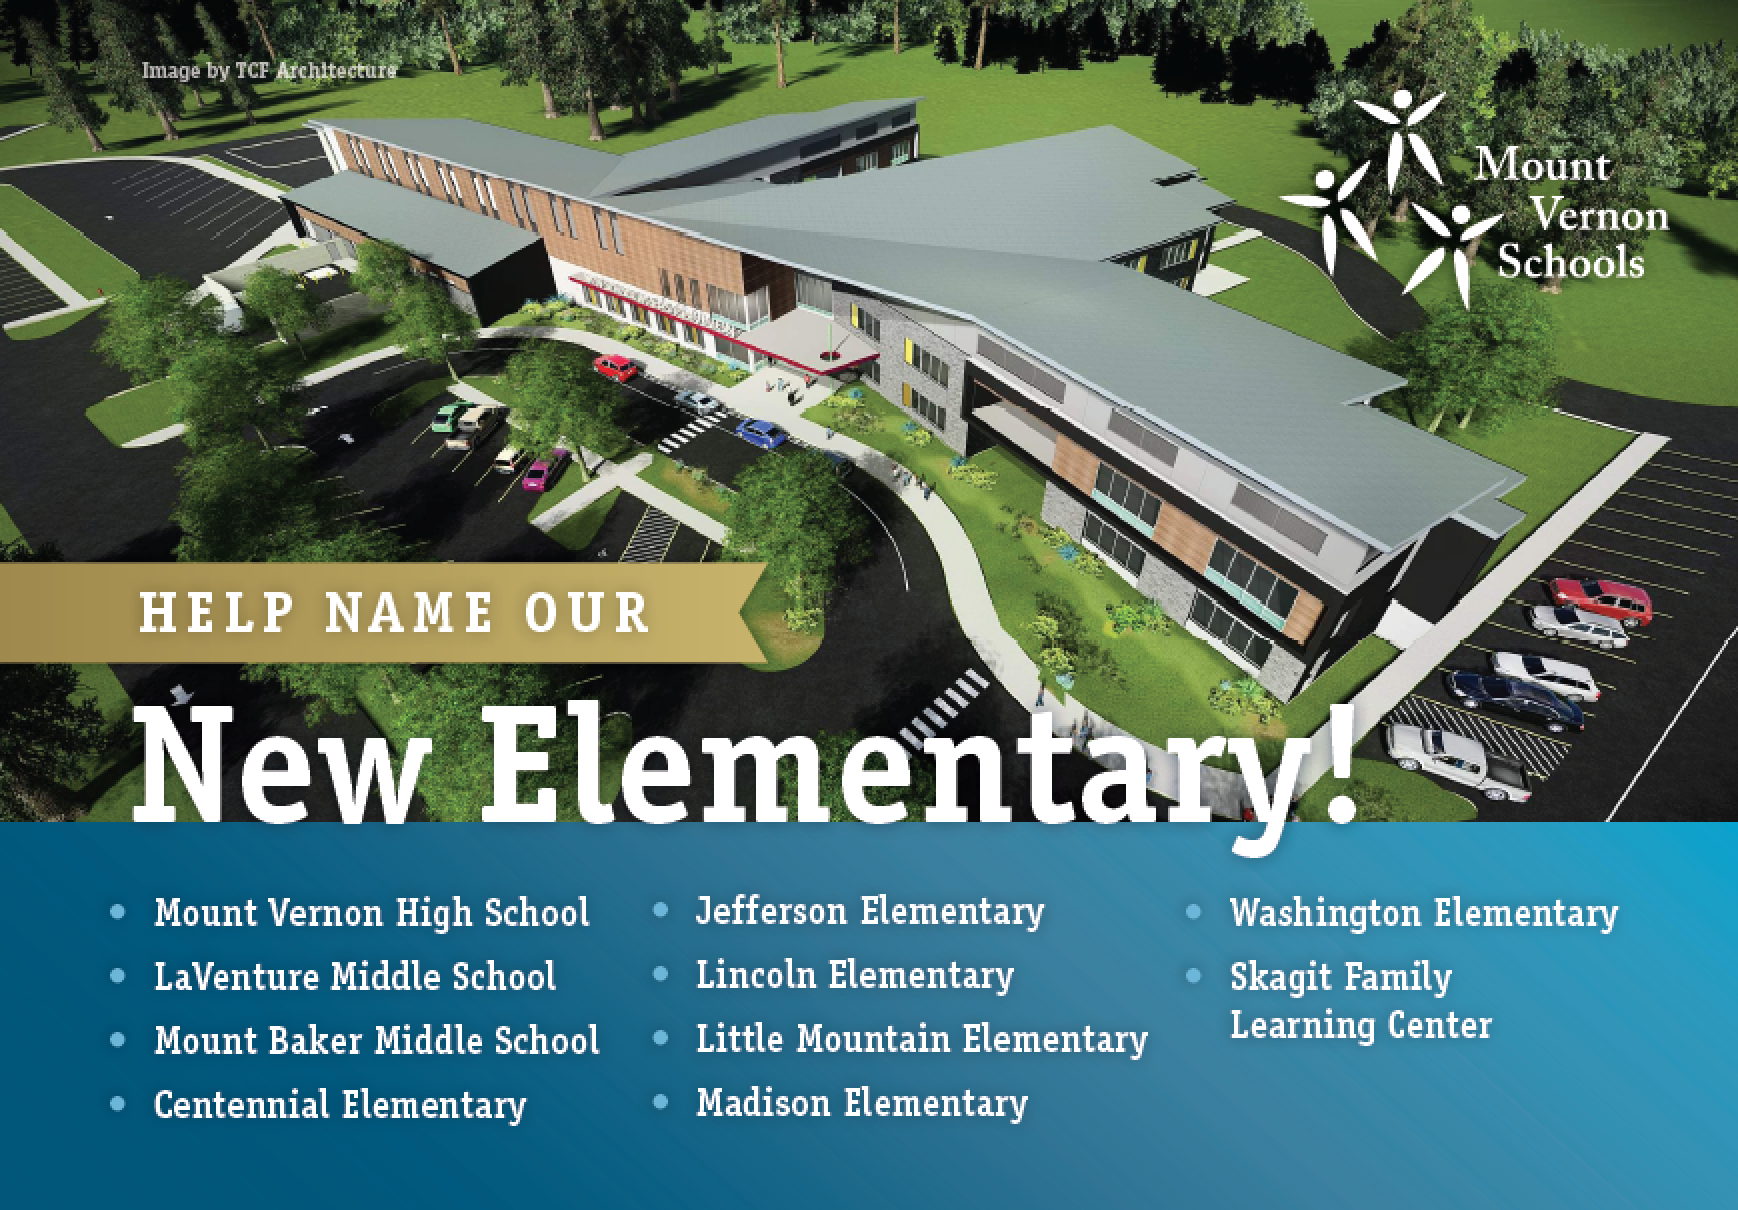 Help name our new elementary school